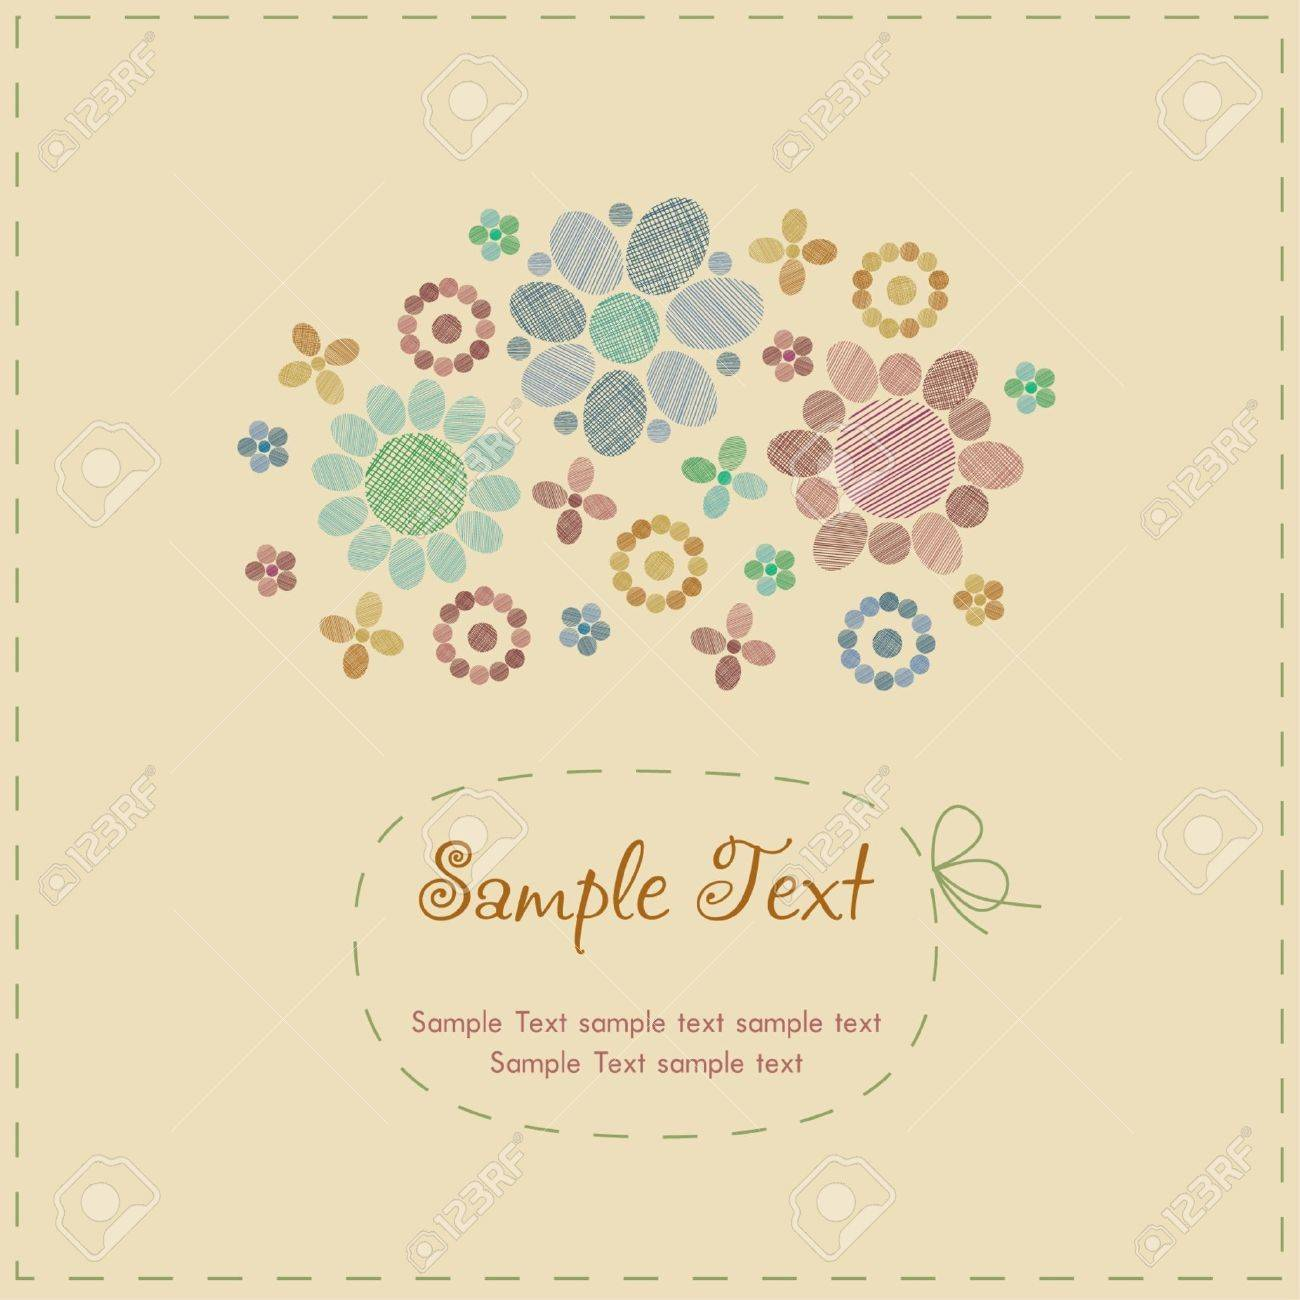 Sample cute romantic vintage greeting card with stylized flowers sample cute romantic vintage greeting card with stylized flowers round decorative elements and place for m4hsunfo